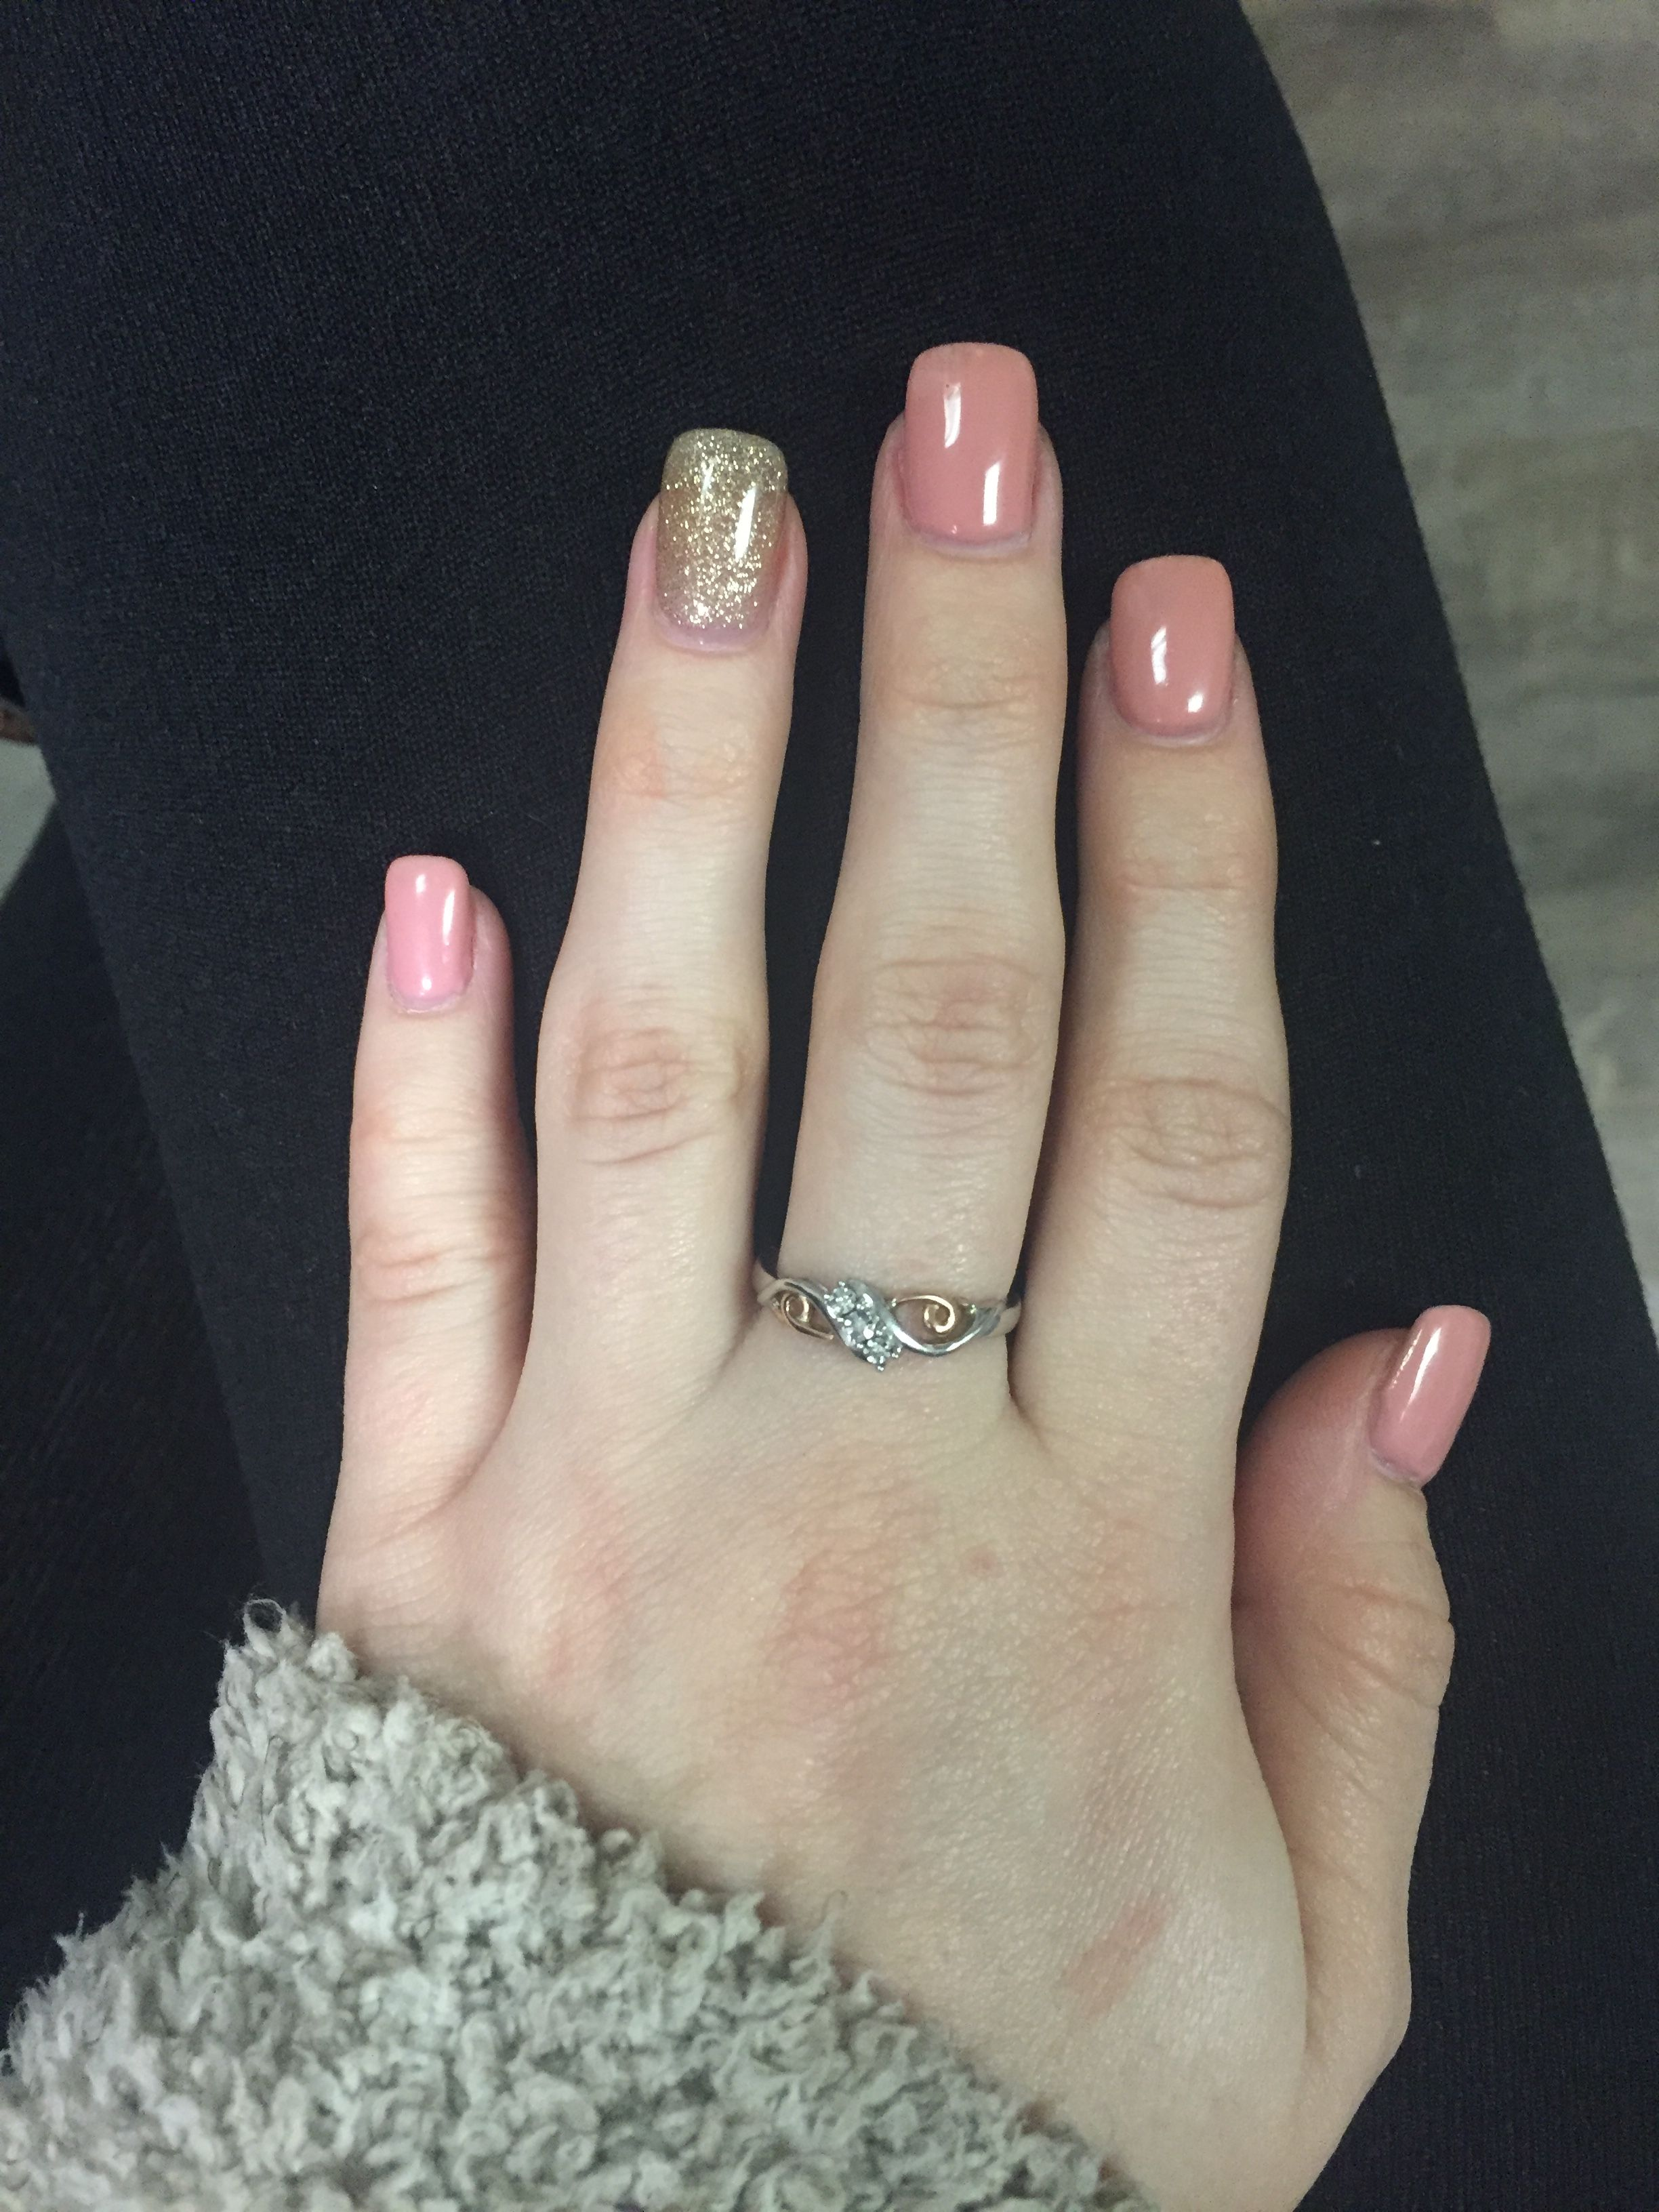 Pink and champagne gold nails✨ #acrylicnails #gelnails #pinknails ...